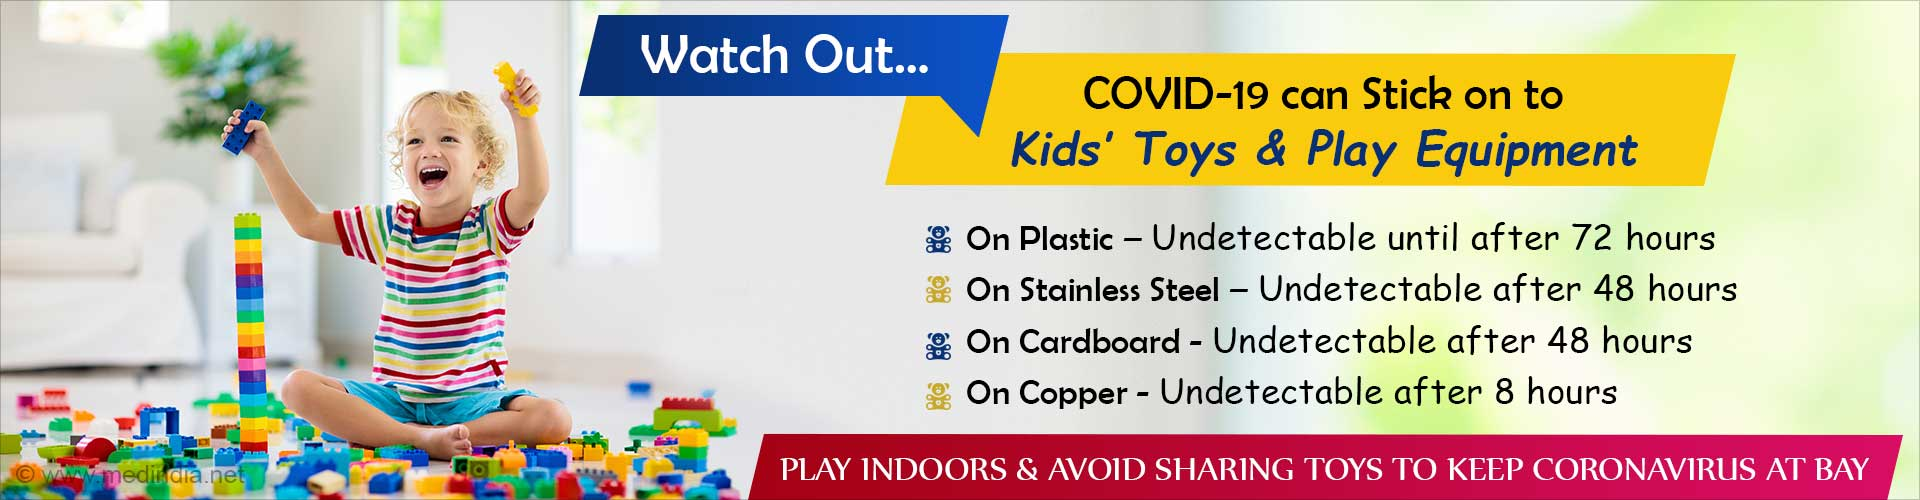 Watch Out: Deadly Coronavirus may Lurk in Kids' Toys and Play Equipment